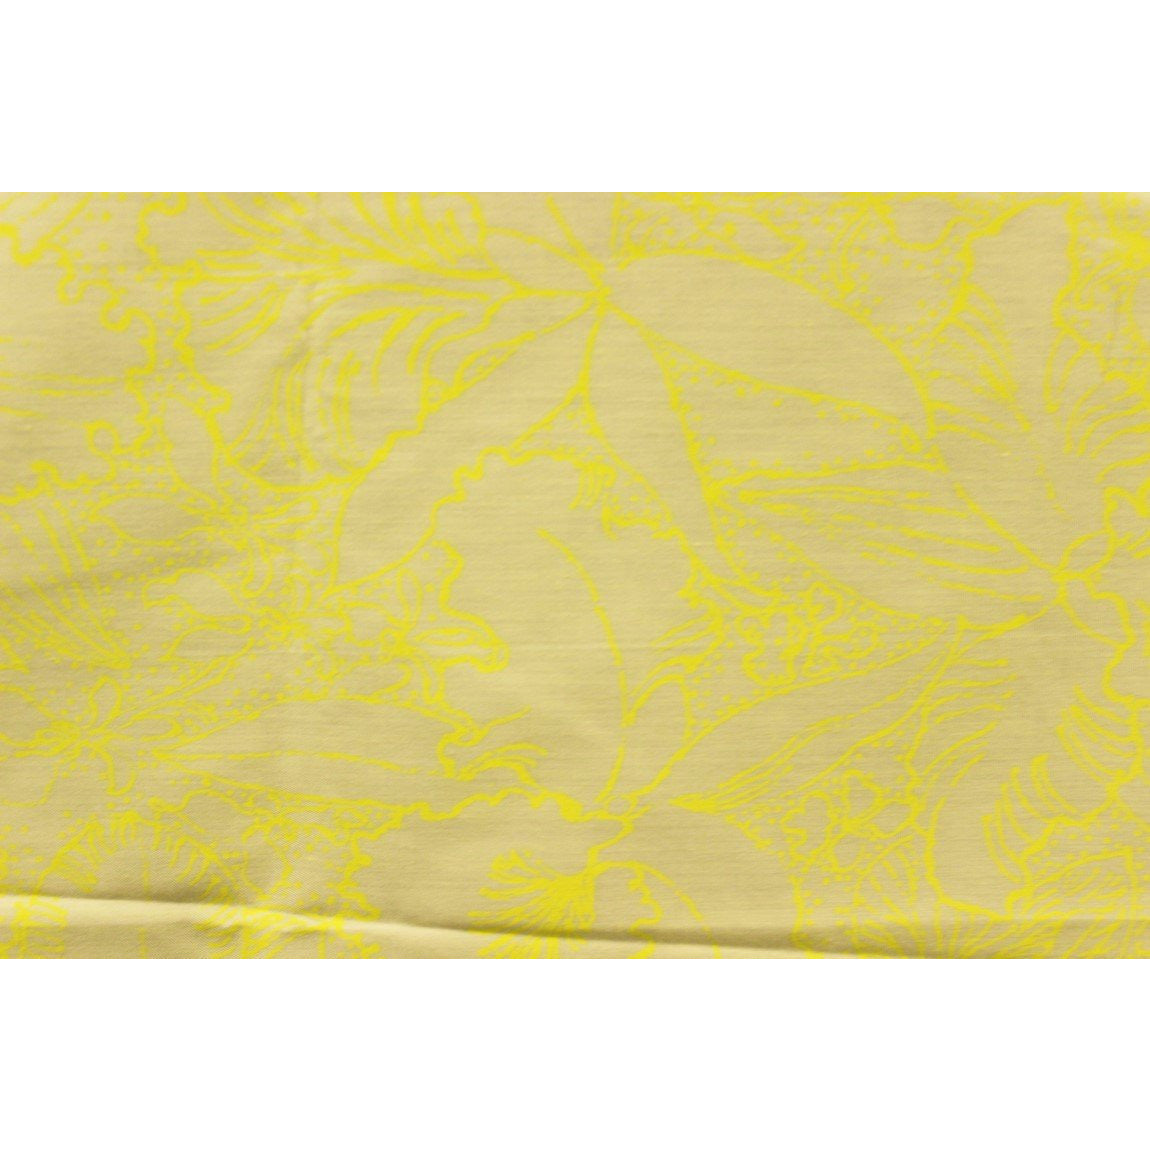 Lilly Pulitzer Vintage Yellow Floral Print Fabric